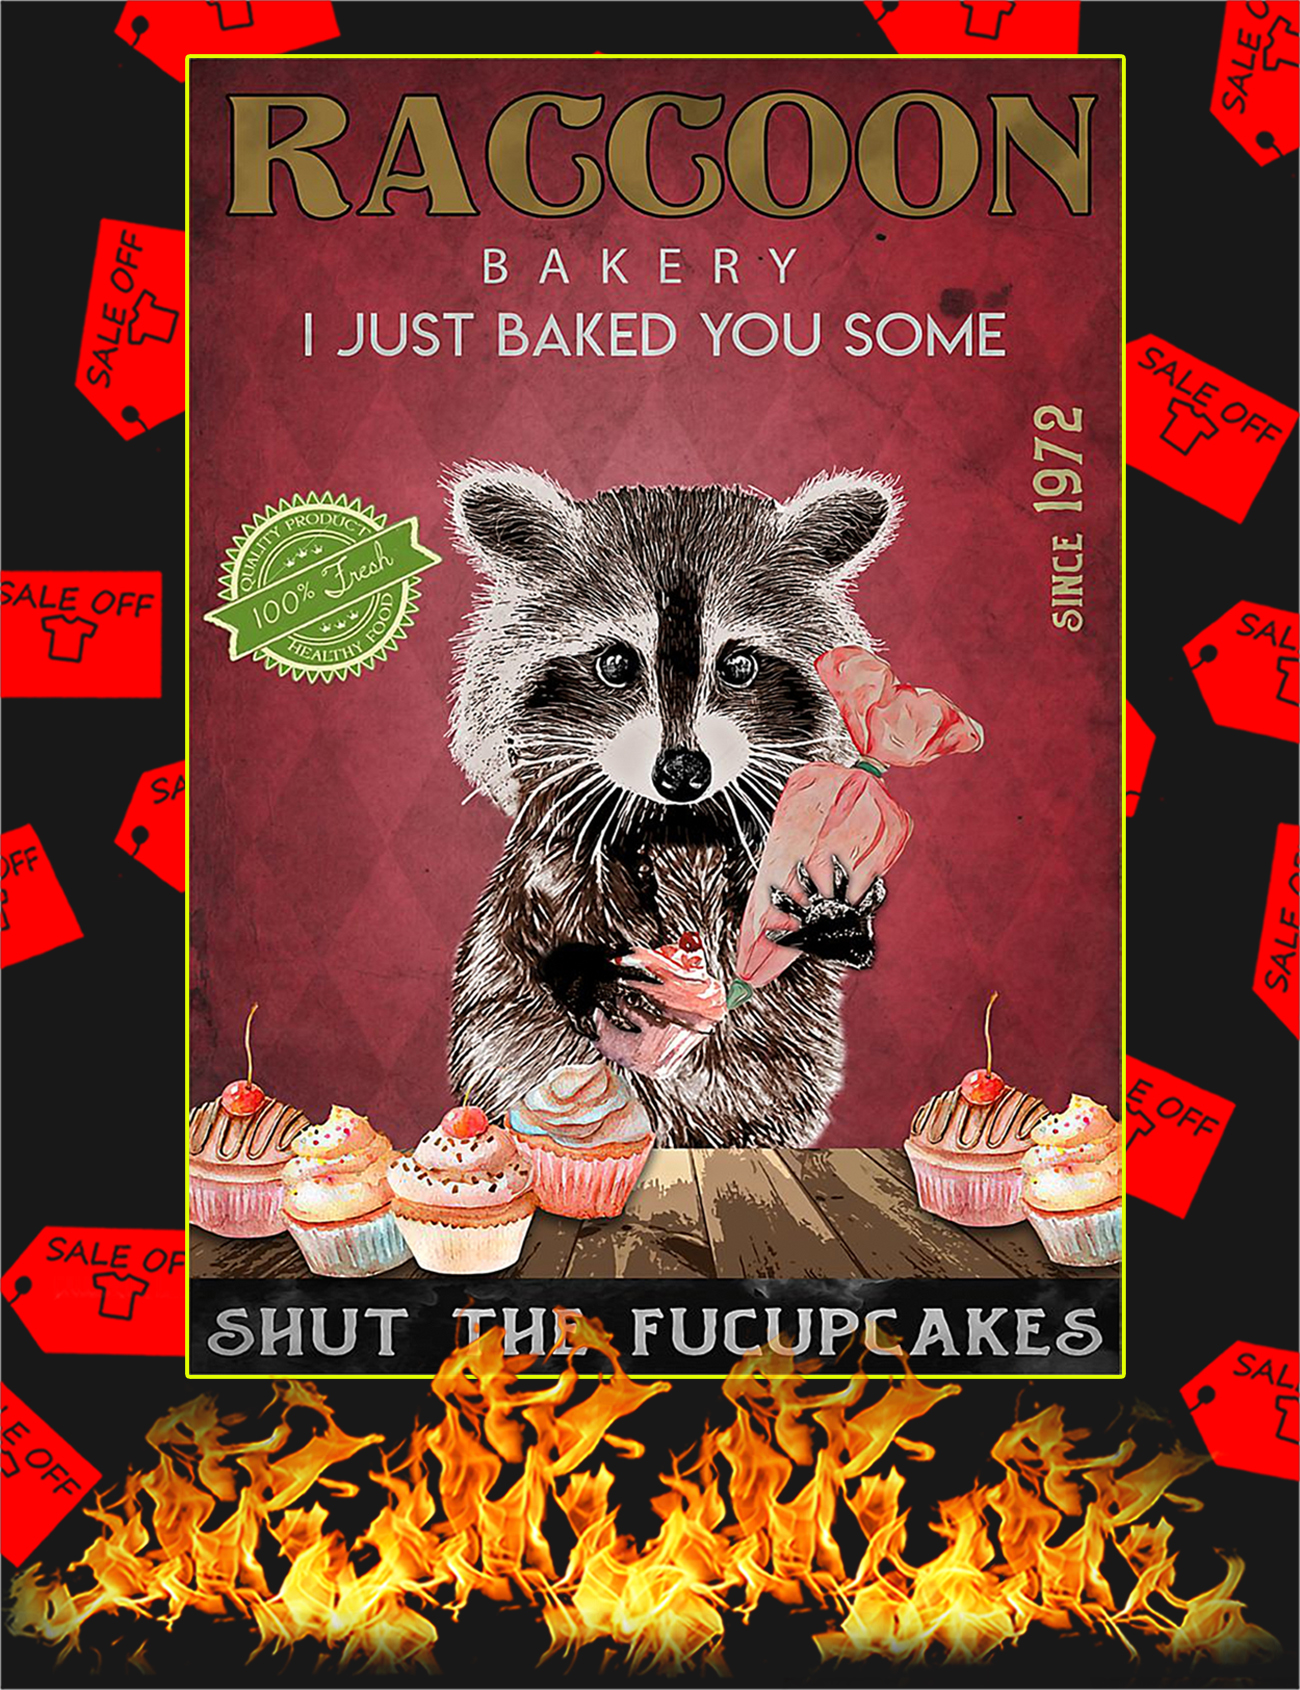 Raccoon bakery I just baked you some poster - A1